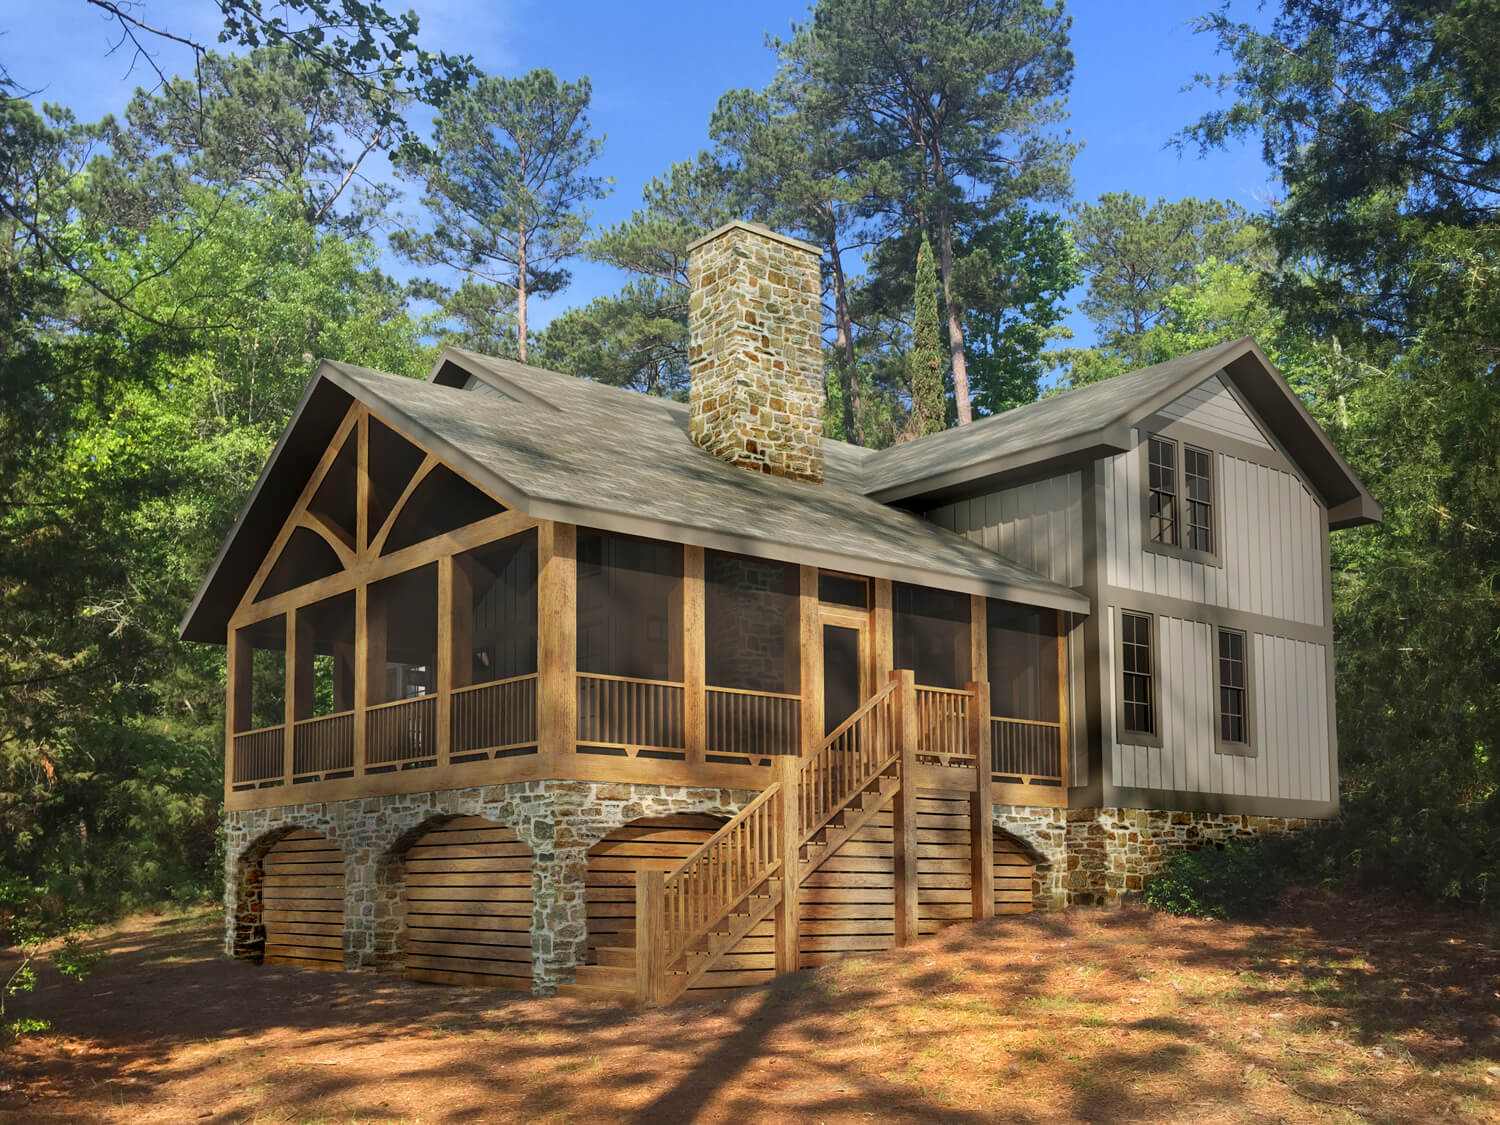 Designed by Foshee Architecture – Lake House 2 Front Corner Perspective